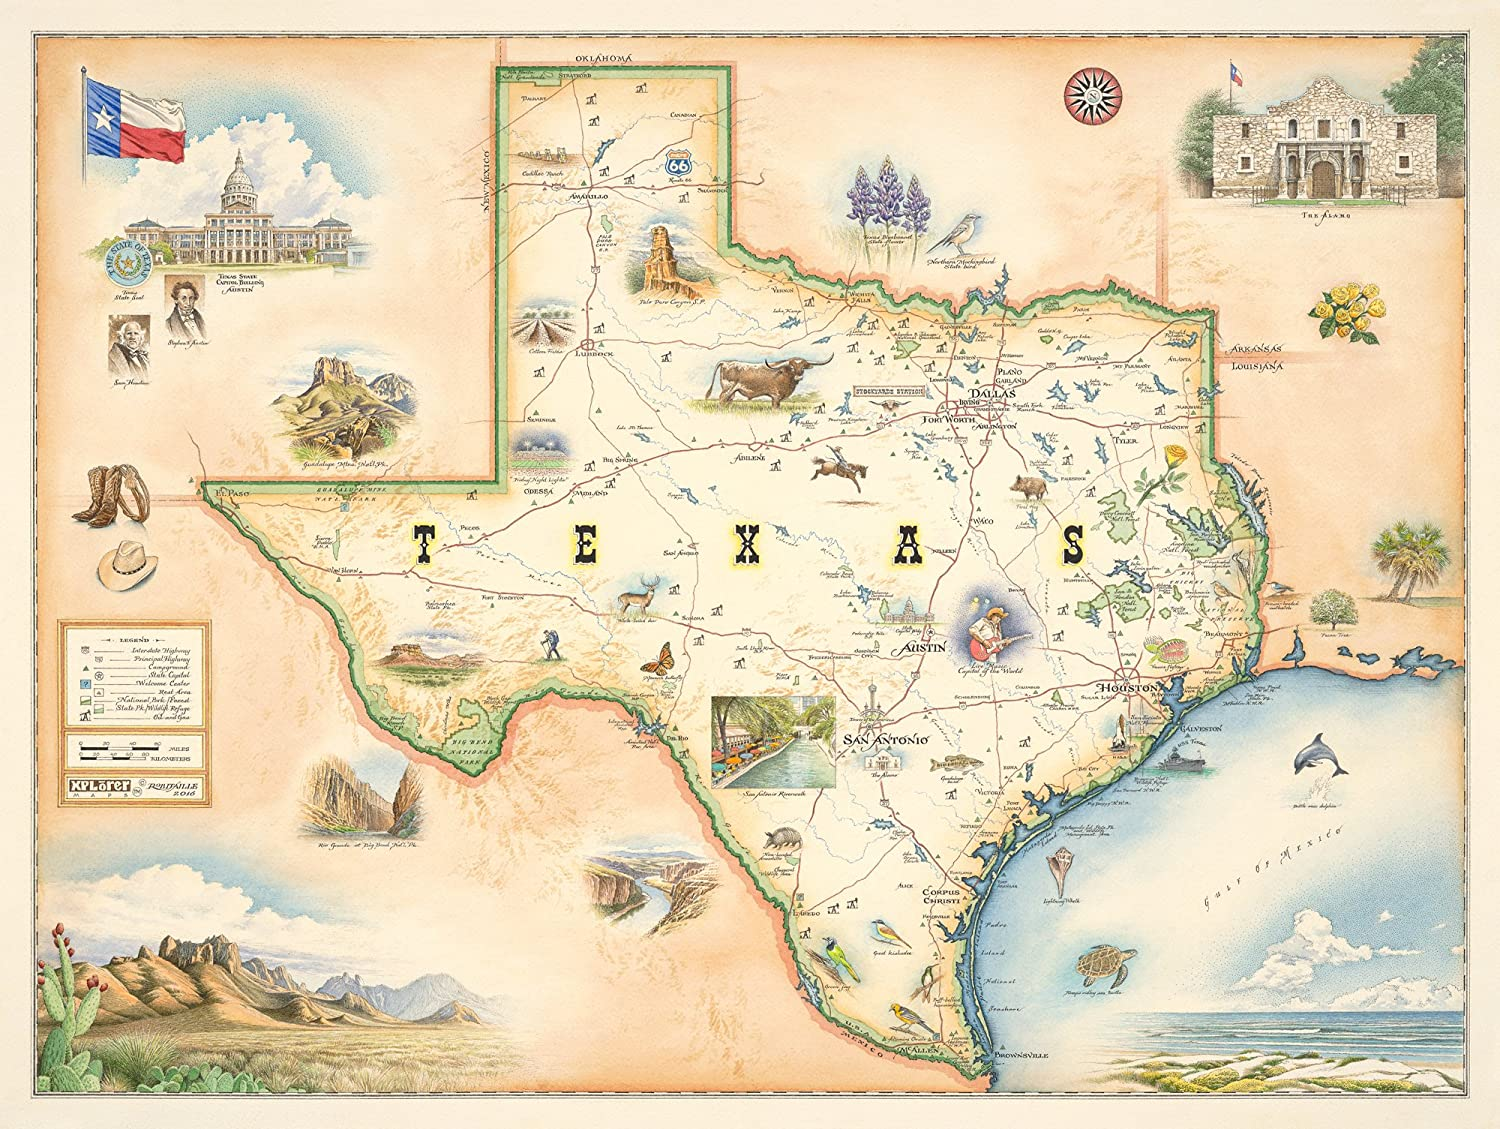 Texas State Map Wall Art Poster - Authentic Hand Drawn Maps in Old World, Antique Style - Art Deco - Lithographic Print